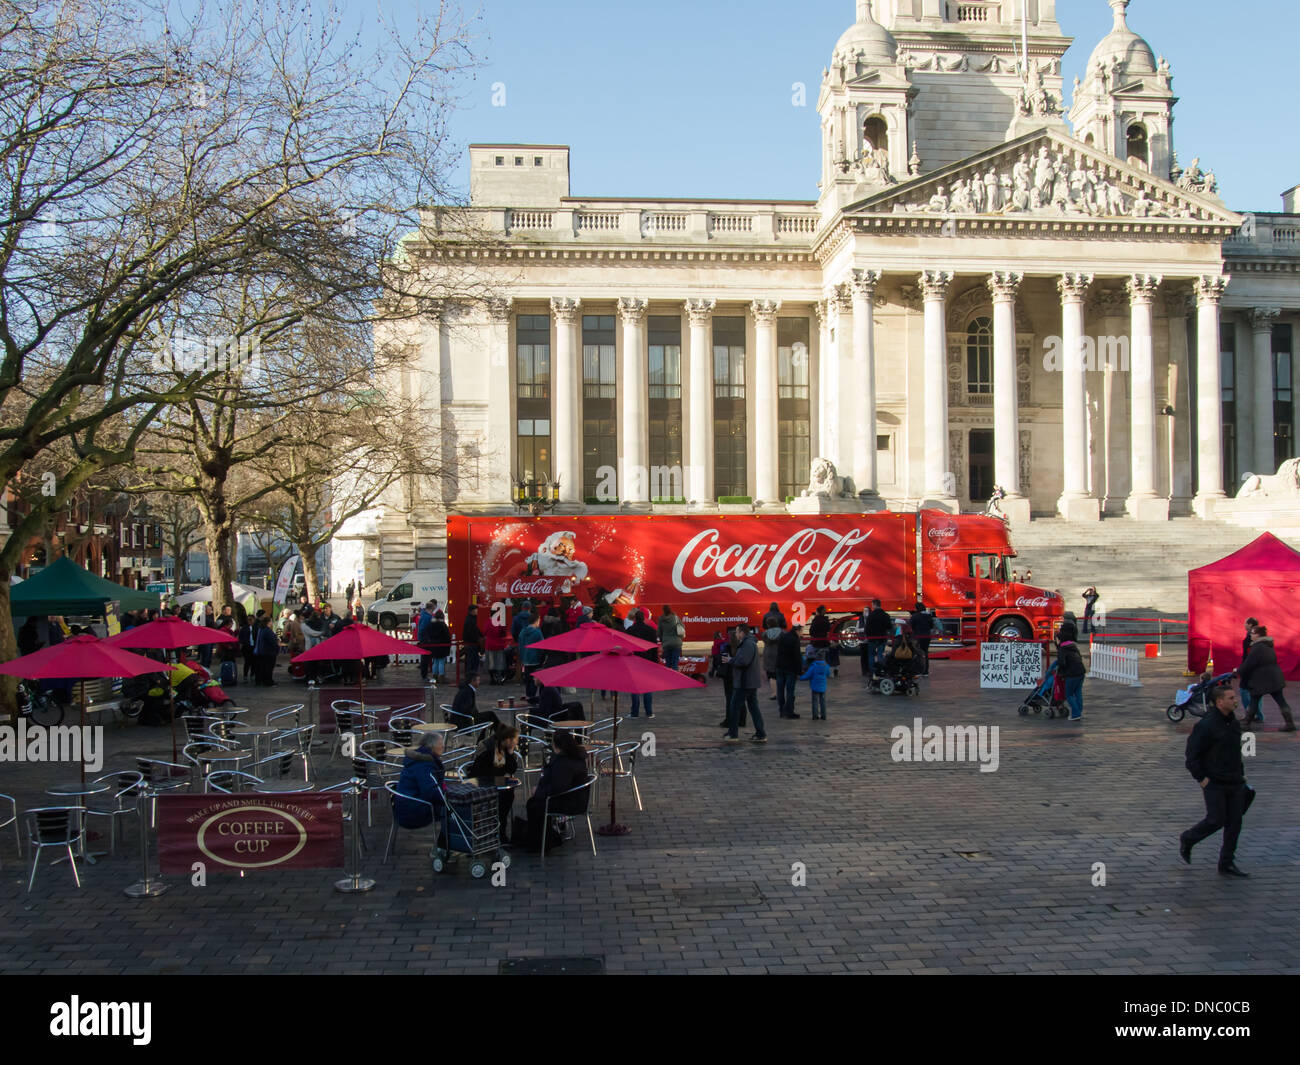 Coca Cola Truck in front of Portsmouth Guildhall, Hampshire. England - Stock Image